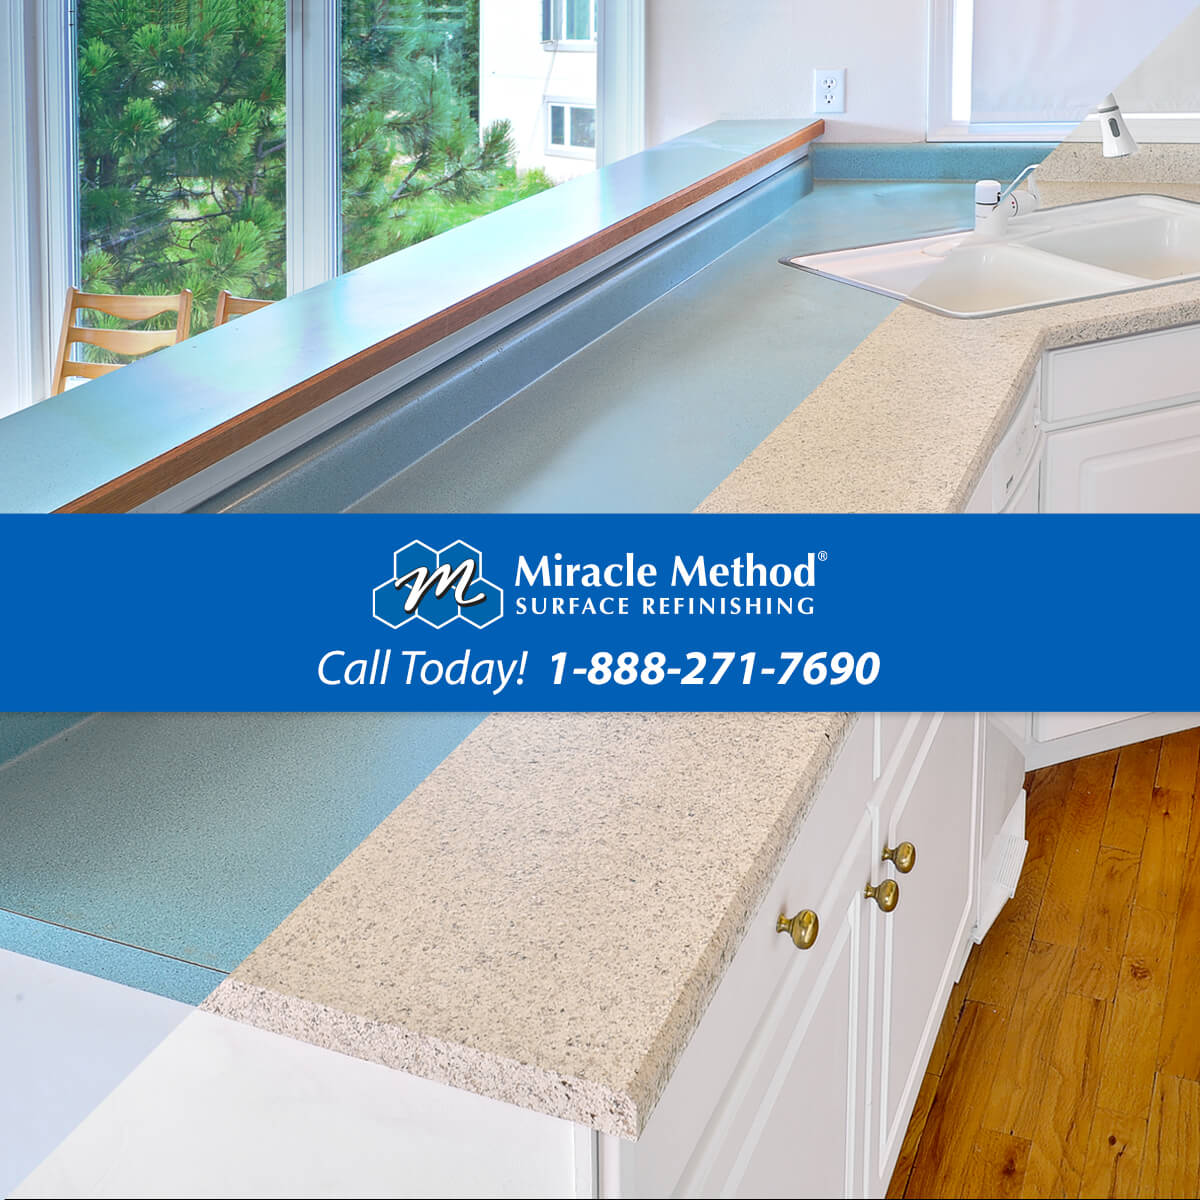 Unusual Paint For A Bathtub Thin Bathtub Refinishing Service Round Companies That Refinish Bathtubs Bathtub Repair Young Bathtub Resurfacing Cost YellowTub Glaze Bathtub Resurfacing   Countertop, Bathroom Tub And Tile Refinishing